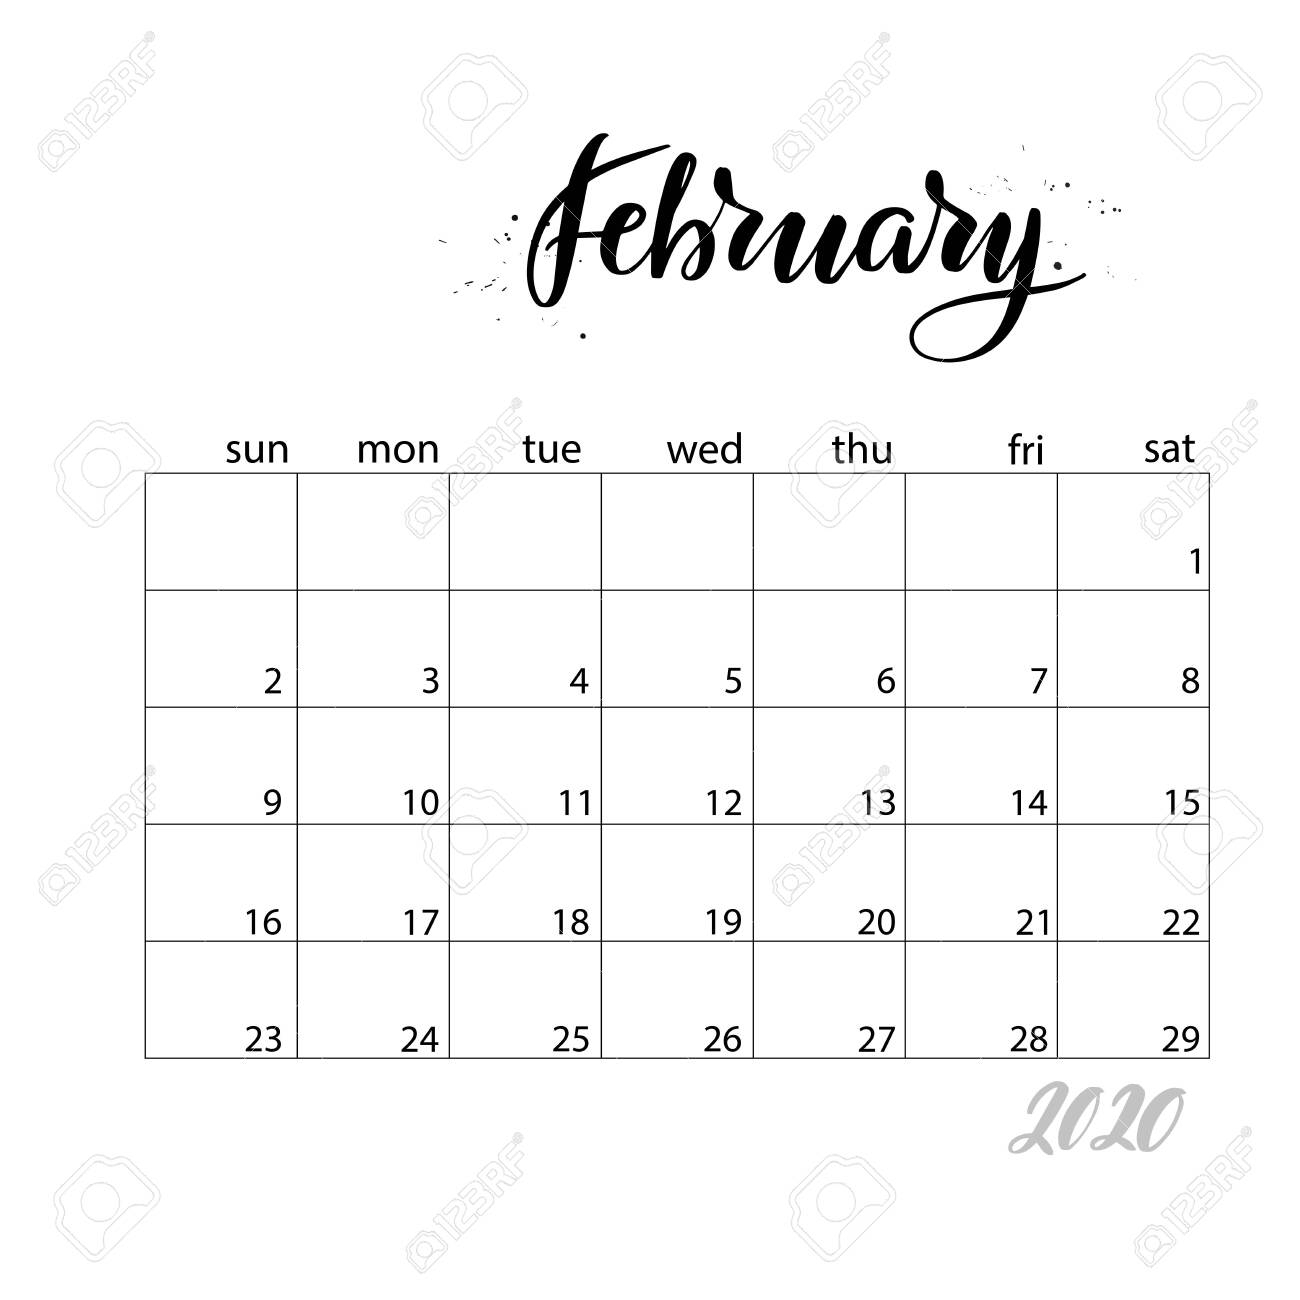 February. Monthly Calendar For 2020 Year. Handwritten Modern..